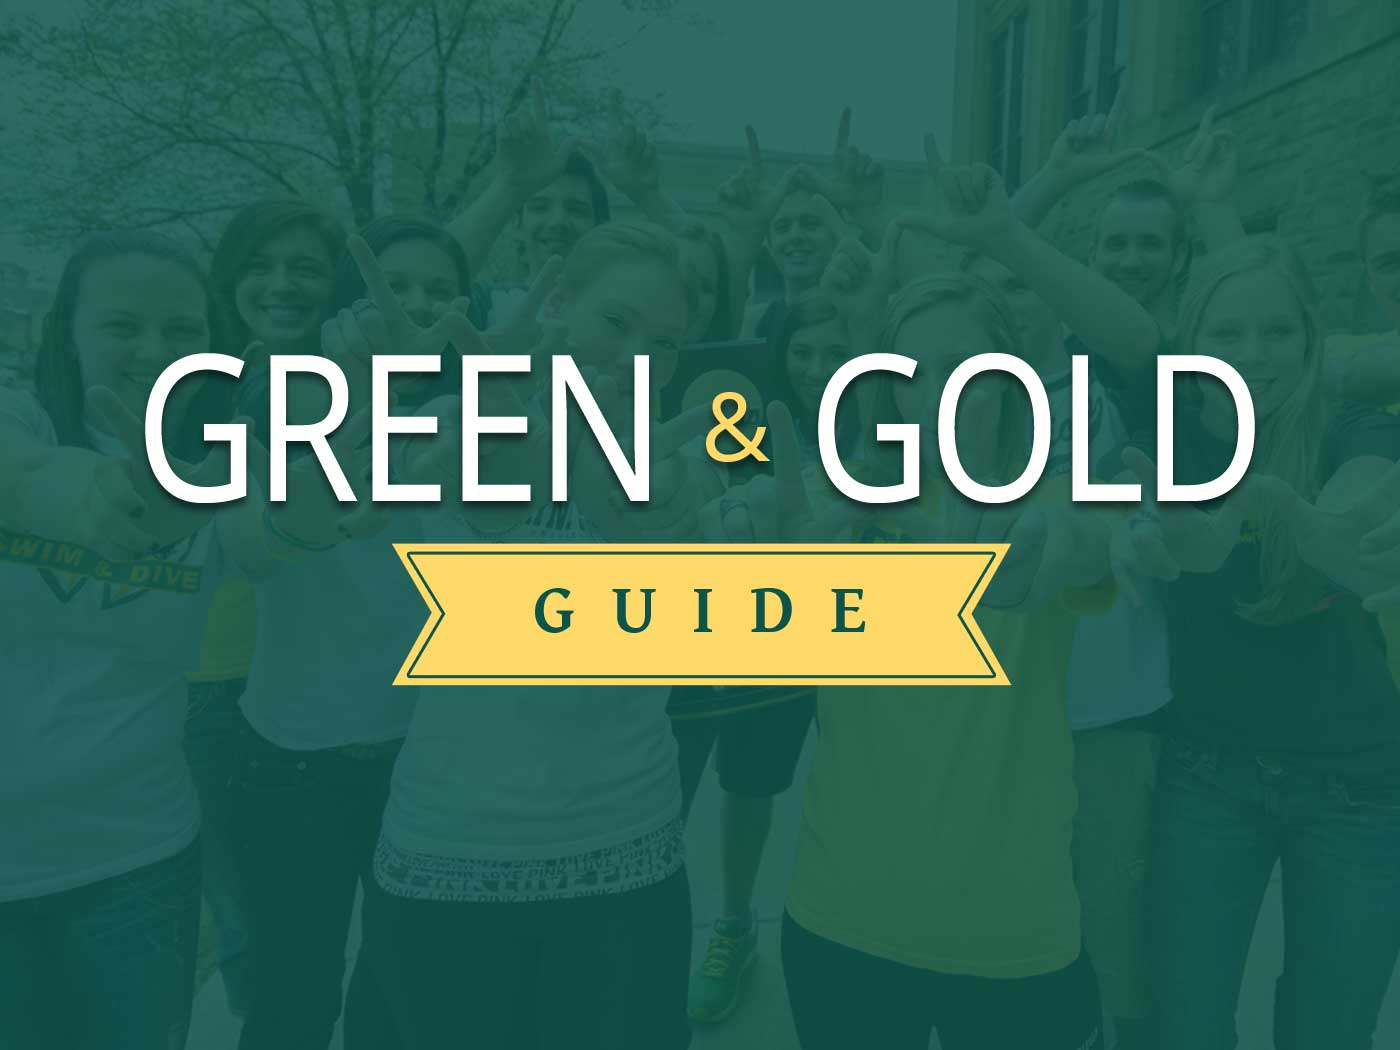 View the Green & Gold Guide